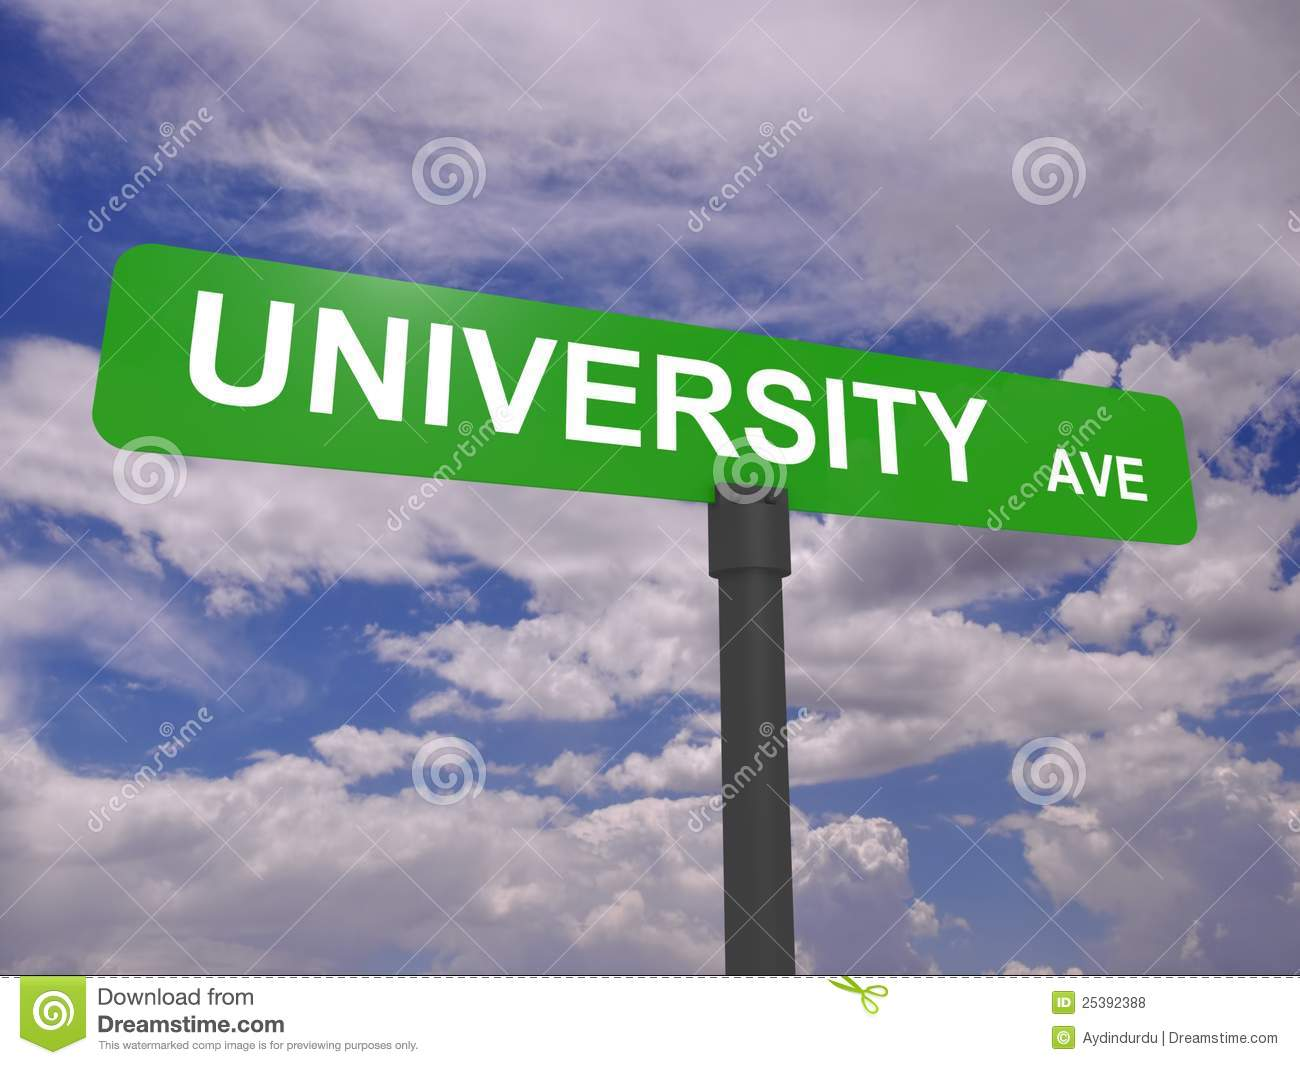 University Avenue Sign Royalty Free Stock Photos  Image. How To Get An Aa Degree Hyndman Charter School. City Of Forney Utilities Purified Water Cooler. Military Loans In Fayetteville Nc. Daytona College Ormond Beach. How To Develop A Free Website. Babysitting Agency London Home Security Blog. Dallas Cosmetology Schools Suicide Self Harm. Cincinnati Logo Design J Renee Nursing School